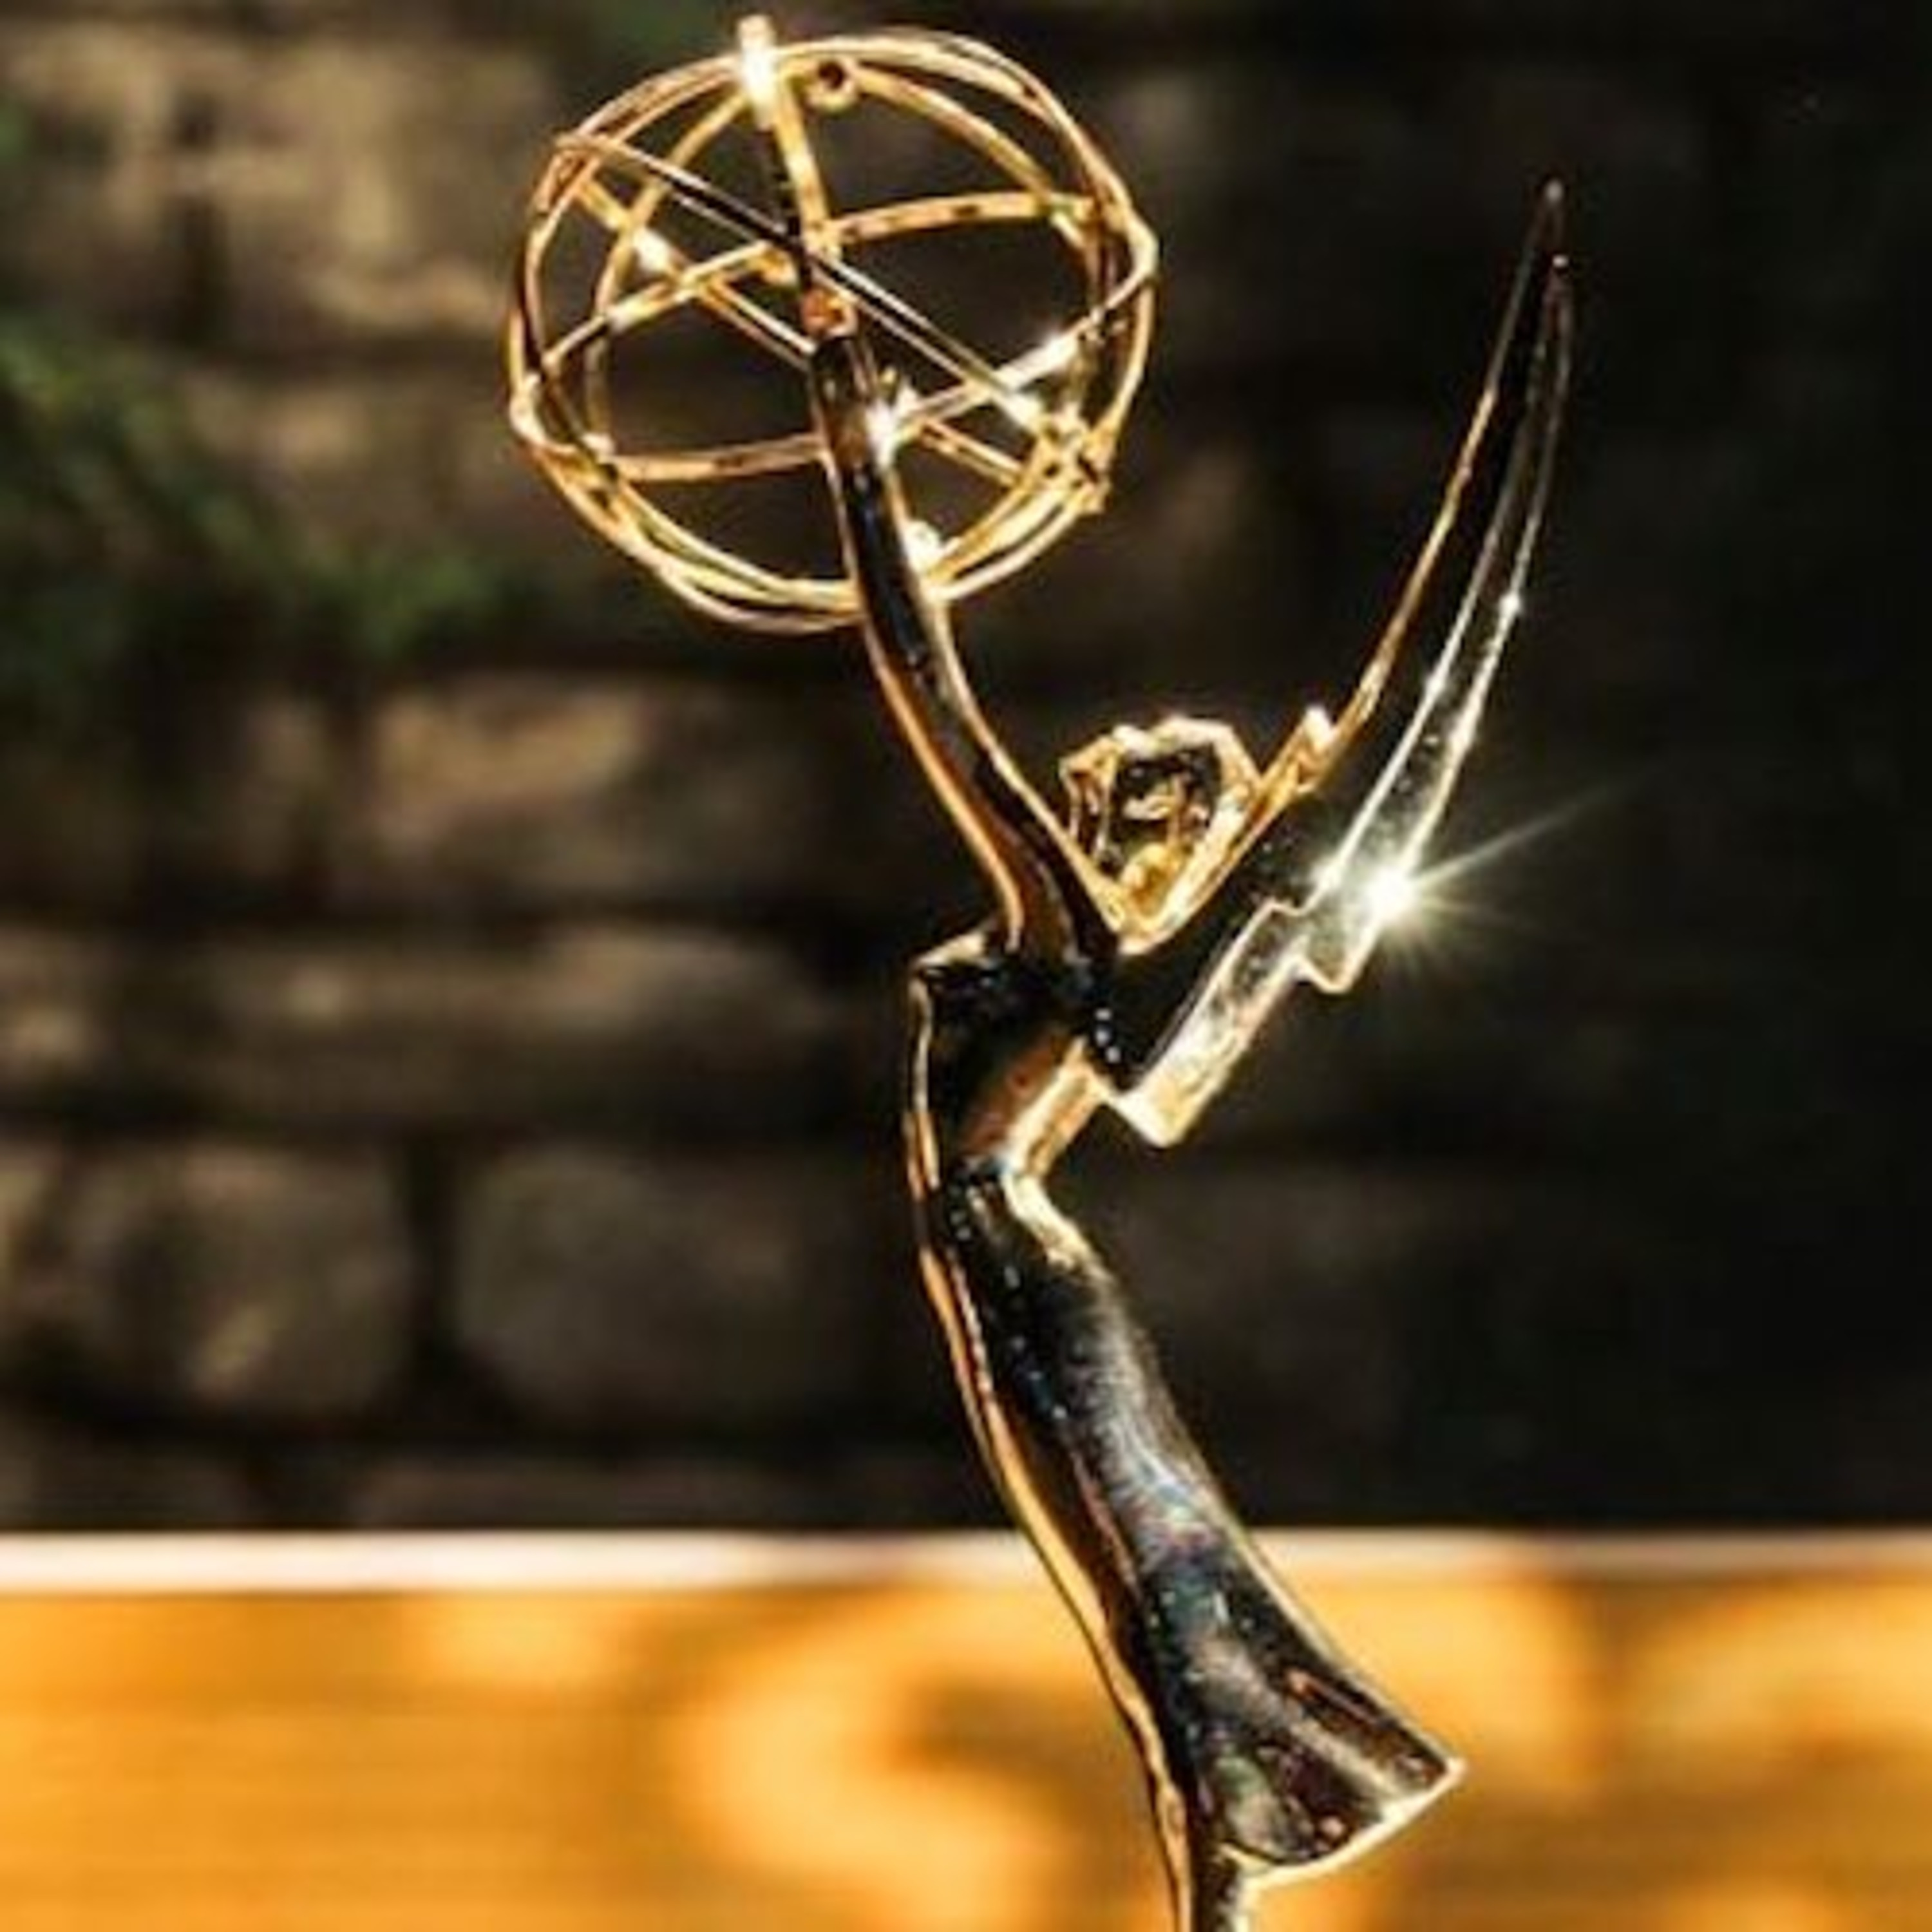 Emmy Awards 2018 - Predictions and Opinions Part 1 (Comedy)